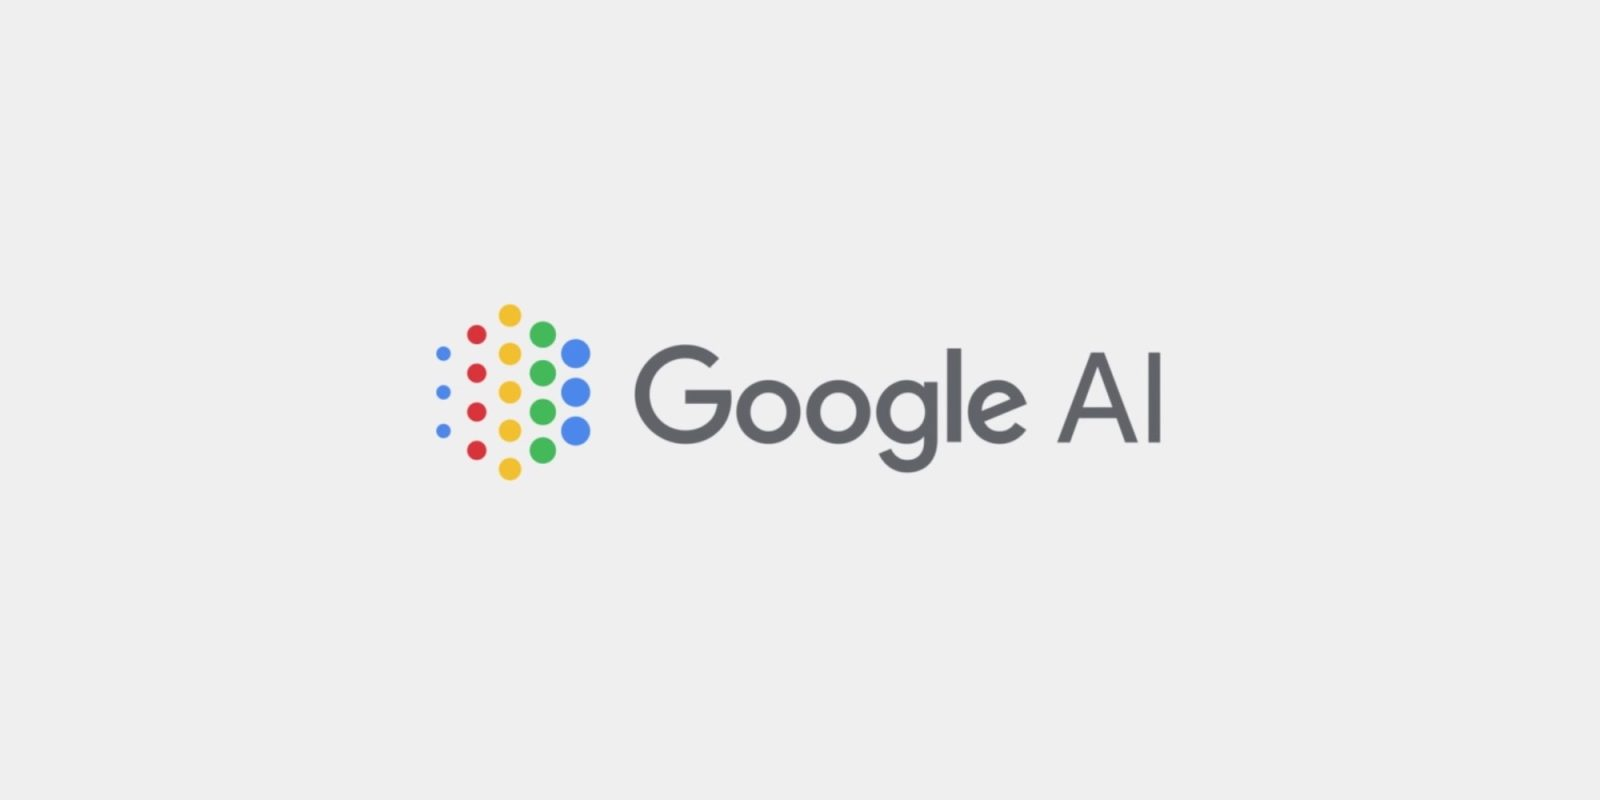 Google Introduces Lifelike AI Experience with Google Duplex